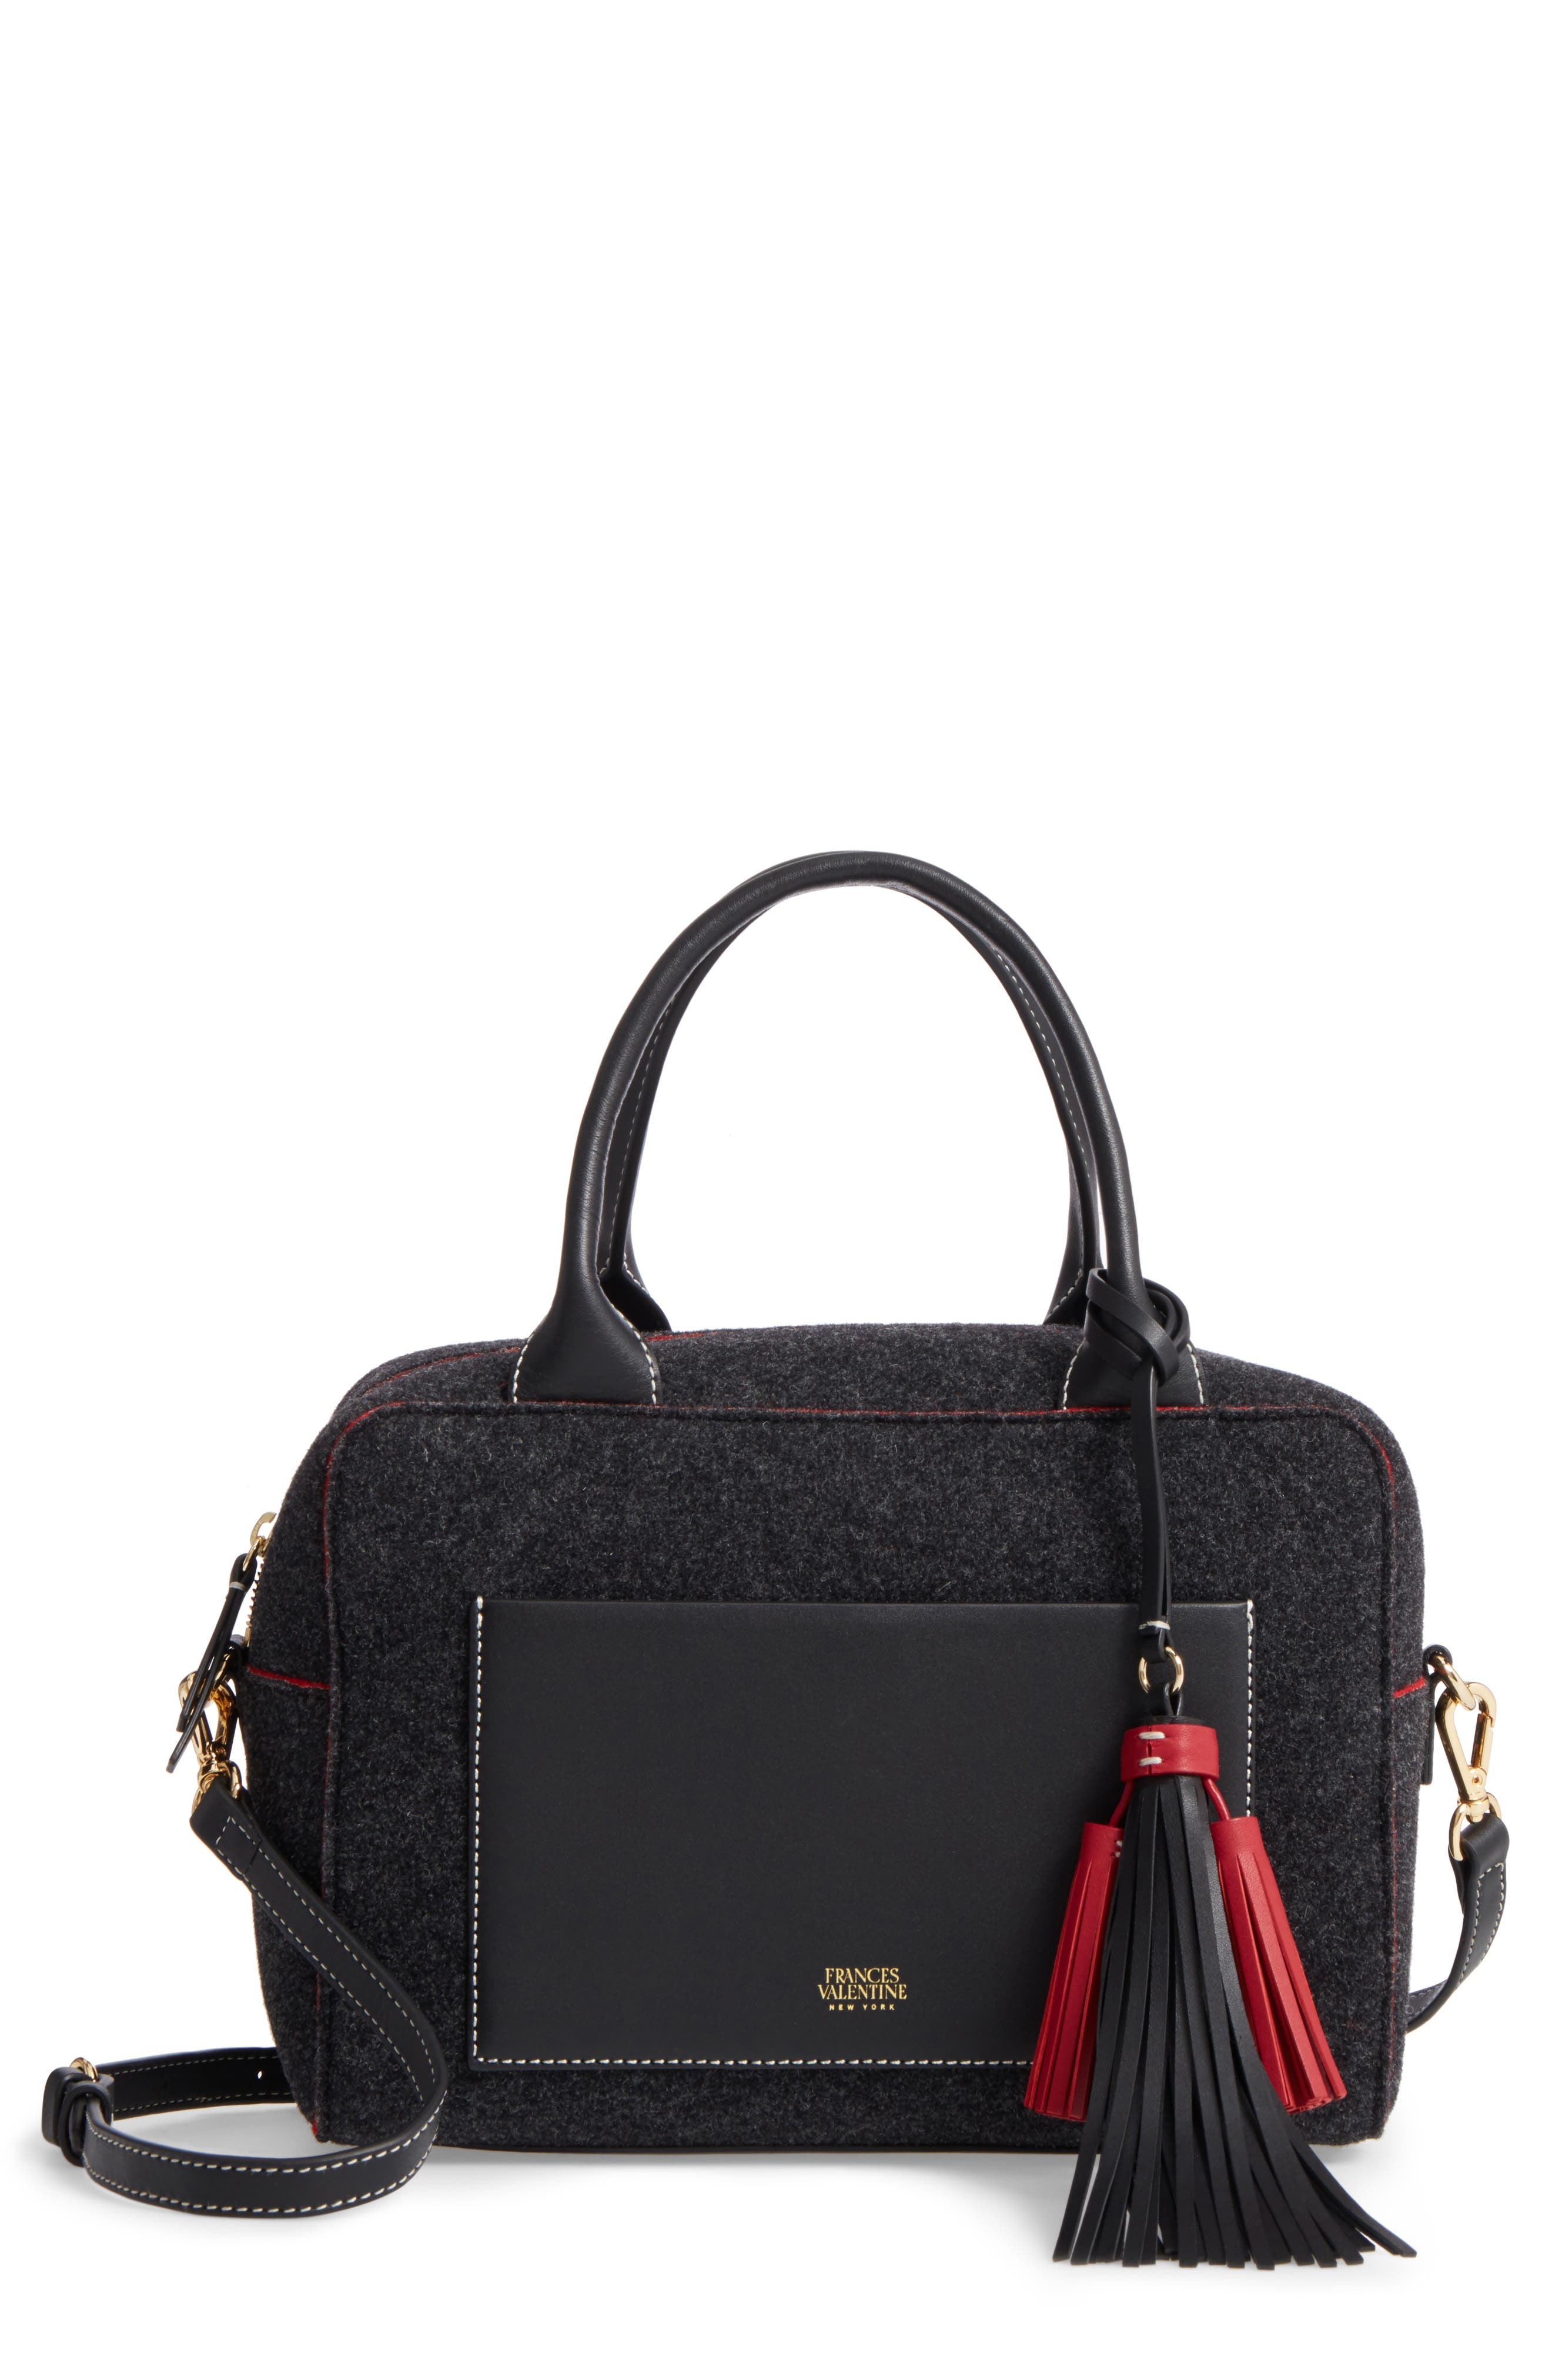 Medium Wool & Leather Satchel,                         Main,                         color, Charcoal